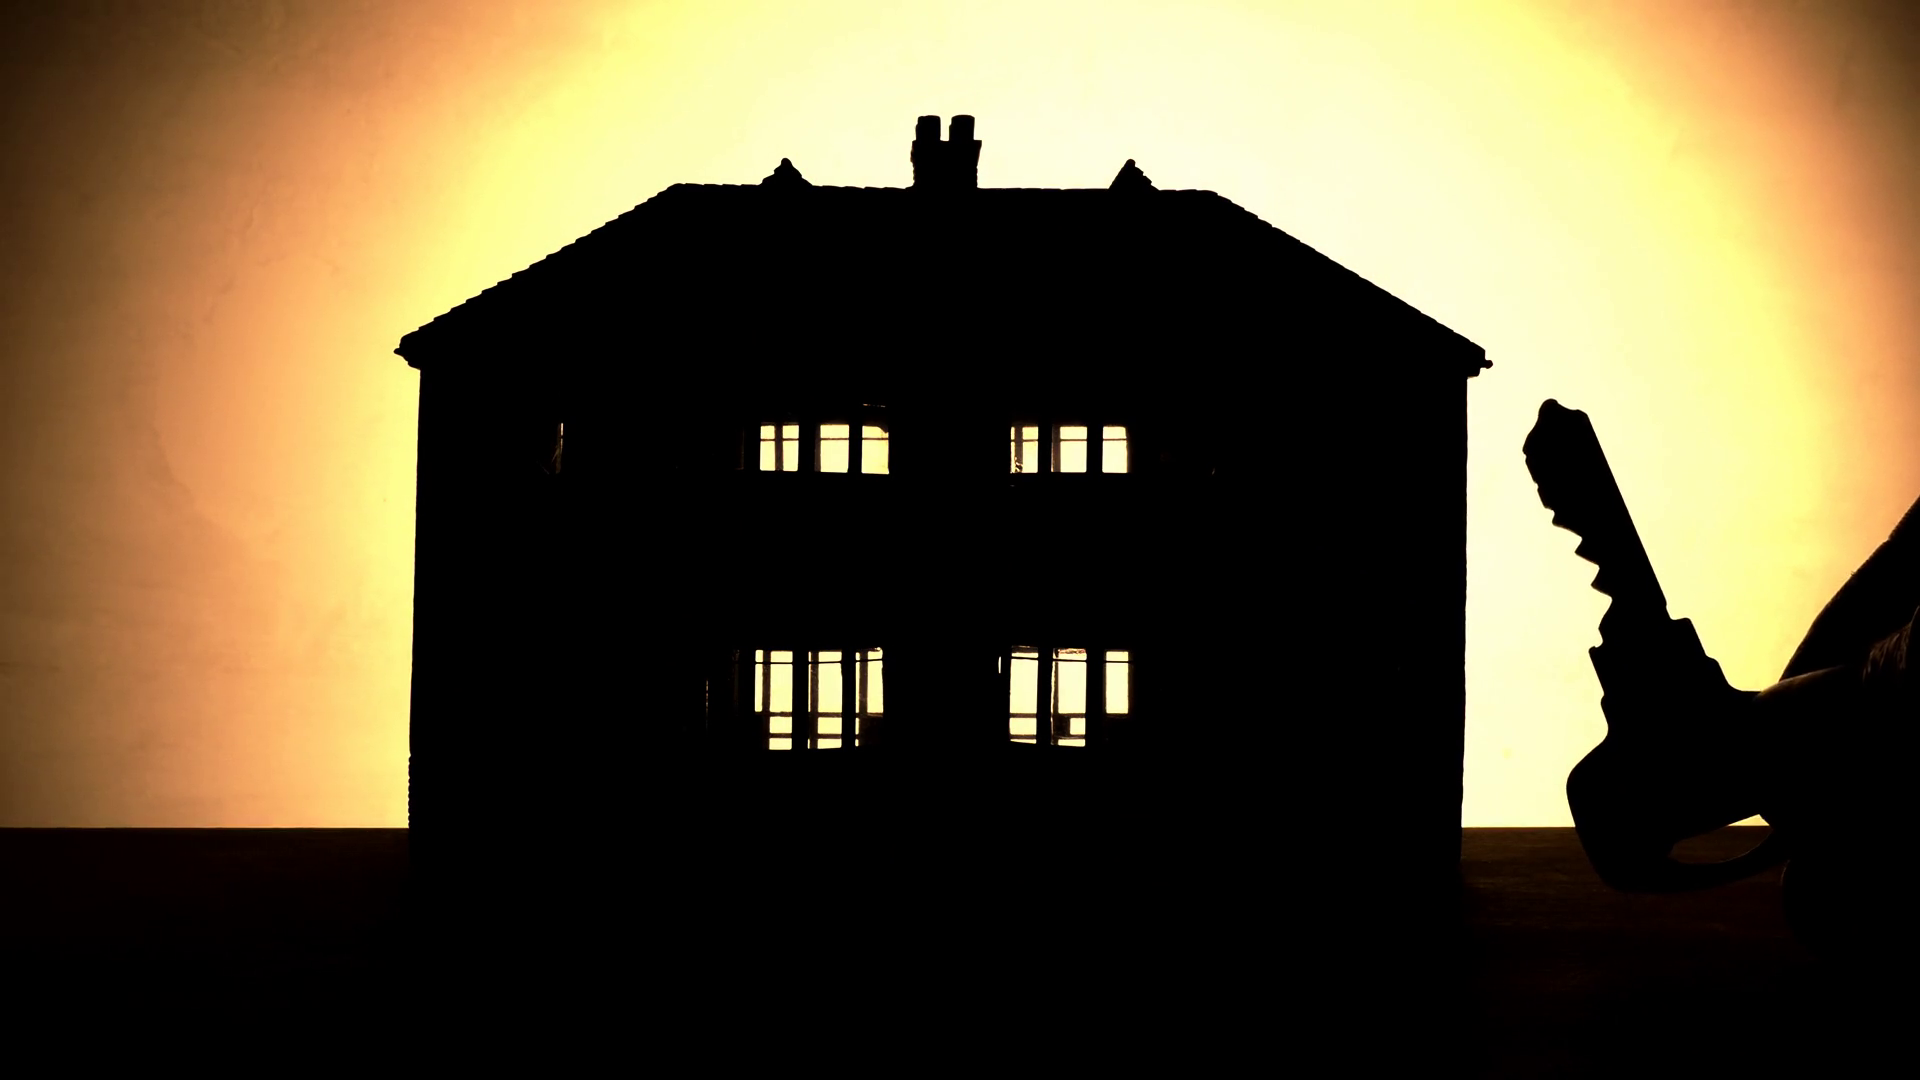 1920x1080 Home Ownership Or Rental Concept. Silhouette Of A Model House